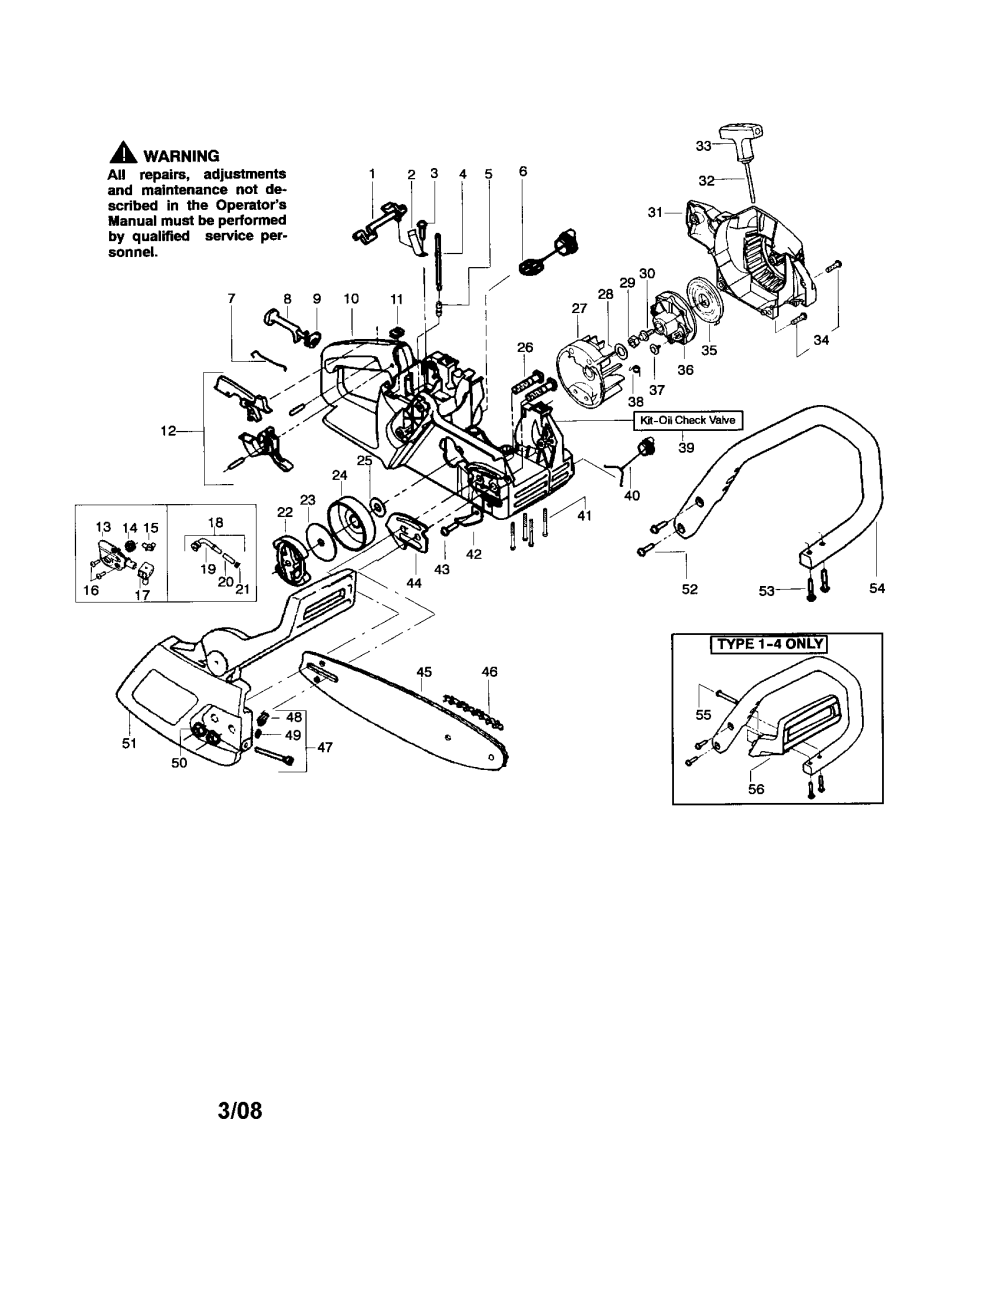 hight resolution of poulan chainsaw schematic medium resolution of poulan chainsaw schematic  [ 1000 x 1297 Pixel ]